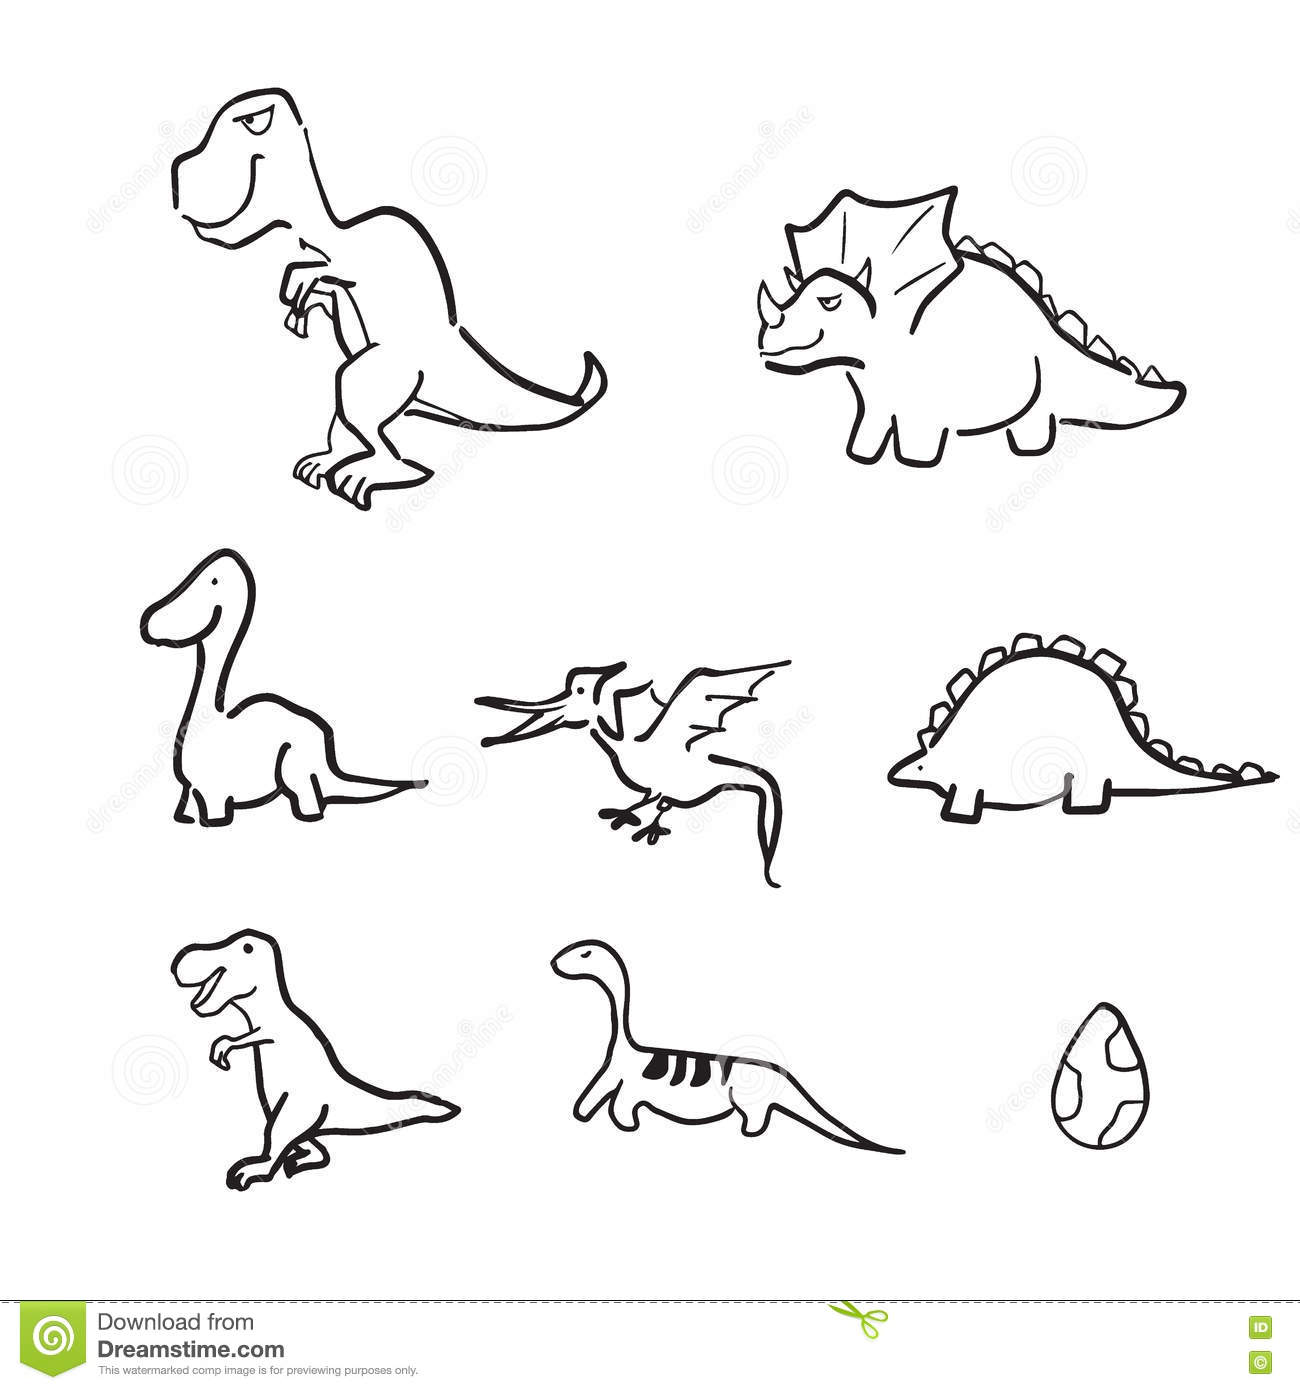 Line Drawing Dinosaur : Dinosaurs cartoon line drawing doodle stock vector image